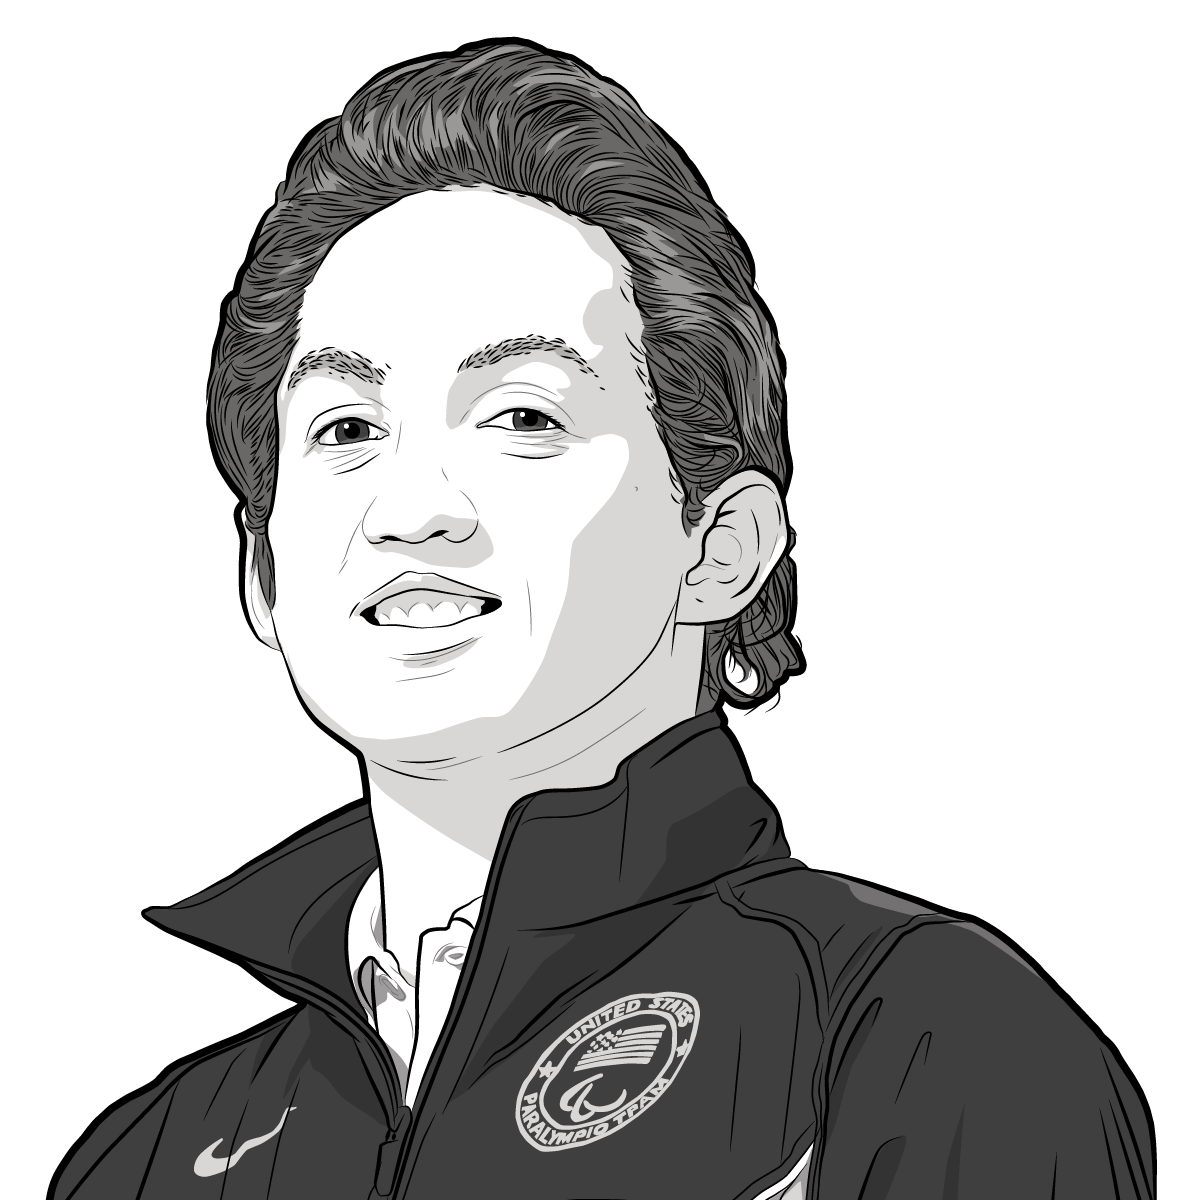 Athlete Portrait of Rudy Garcia-Tolson, illustration by Max Hancock